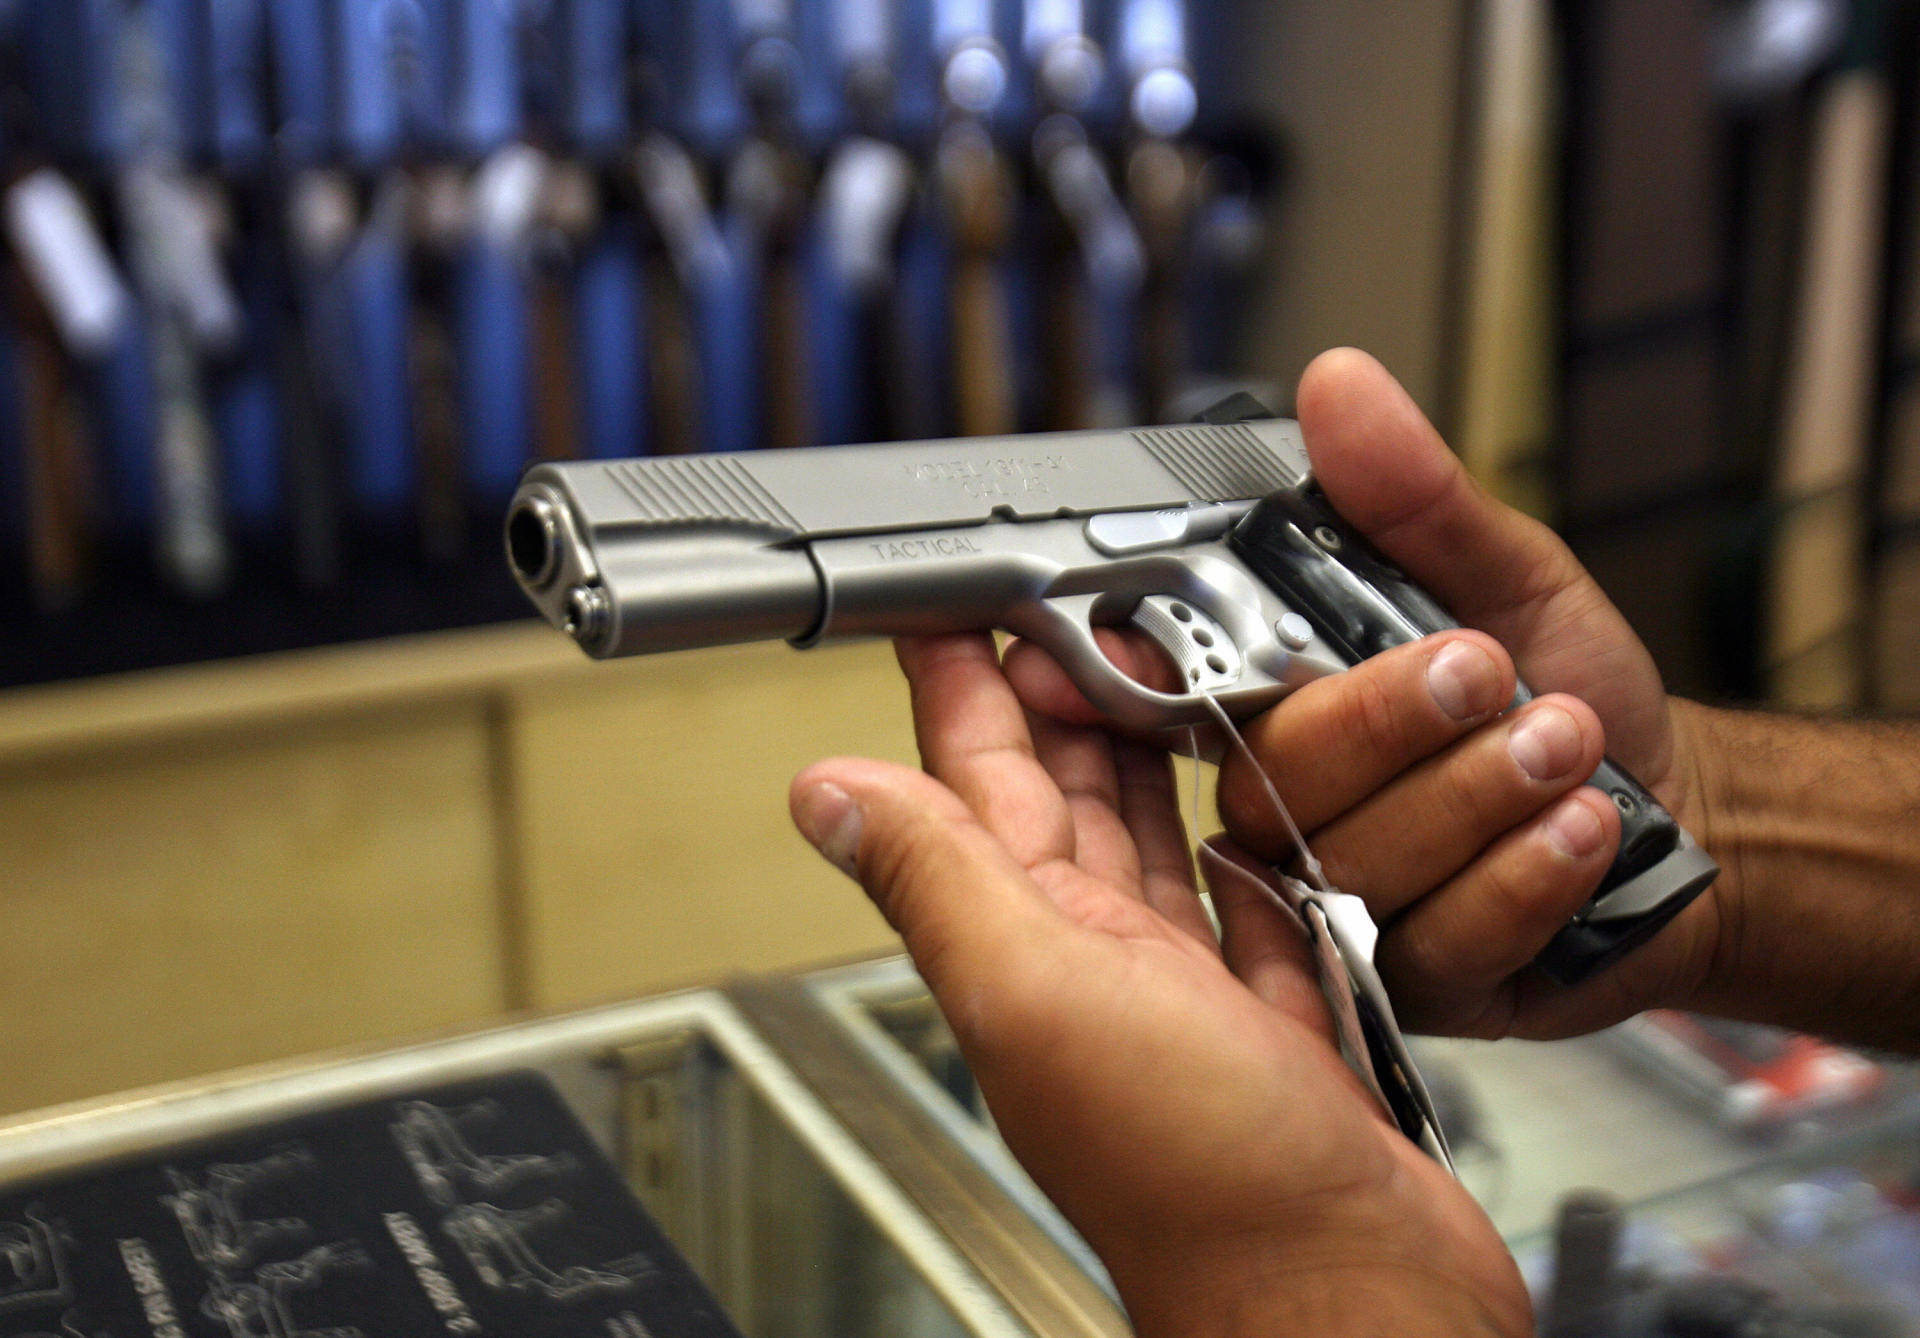 A bill in the California Legislature asks the UC Board of Regents to establish the Firearm Violence Research Center.